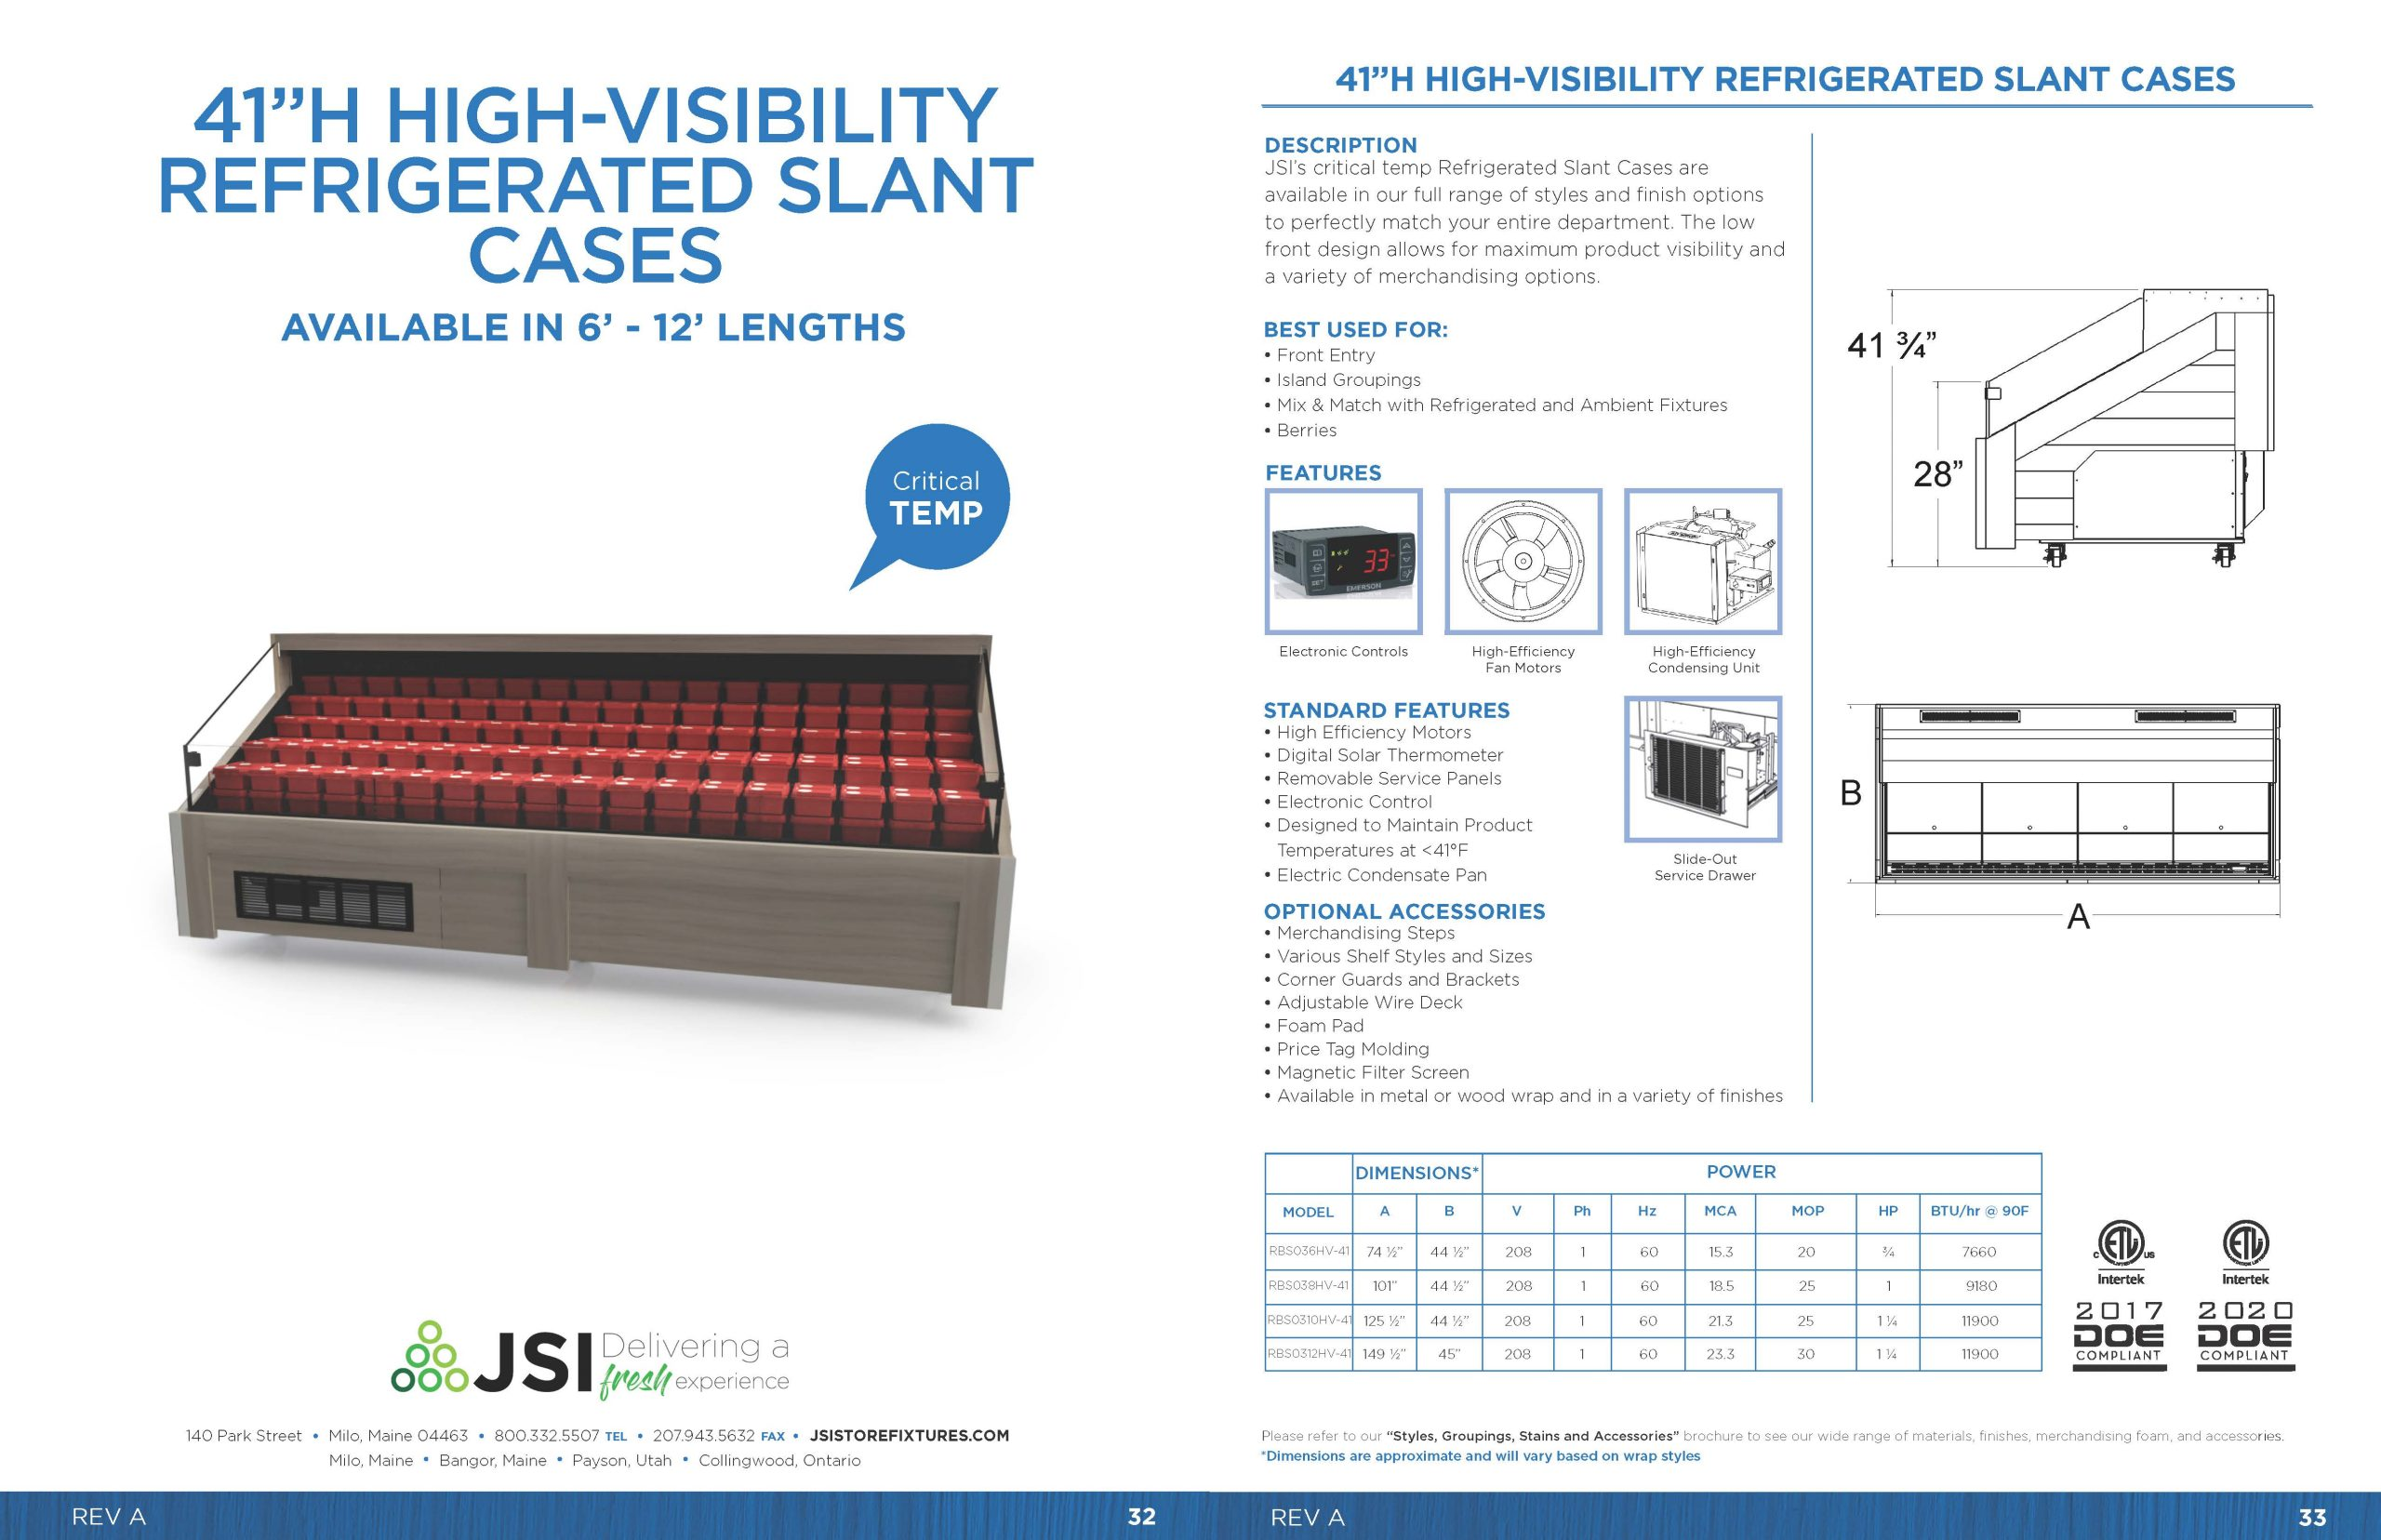 41in High-Visibility Refrigerated Slant Cases_6ft-12ft